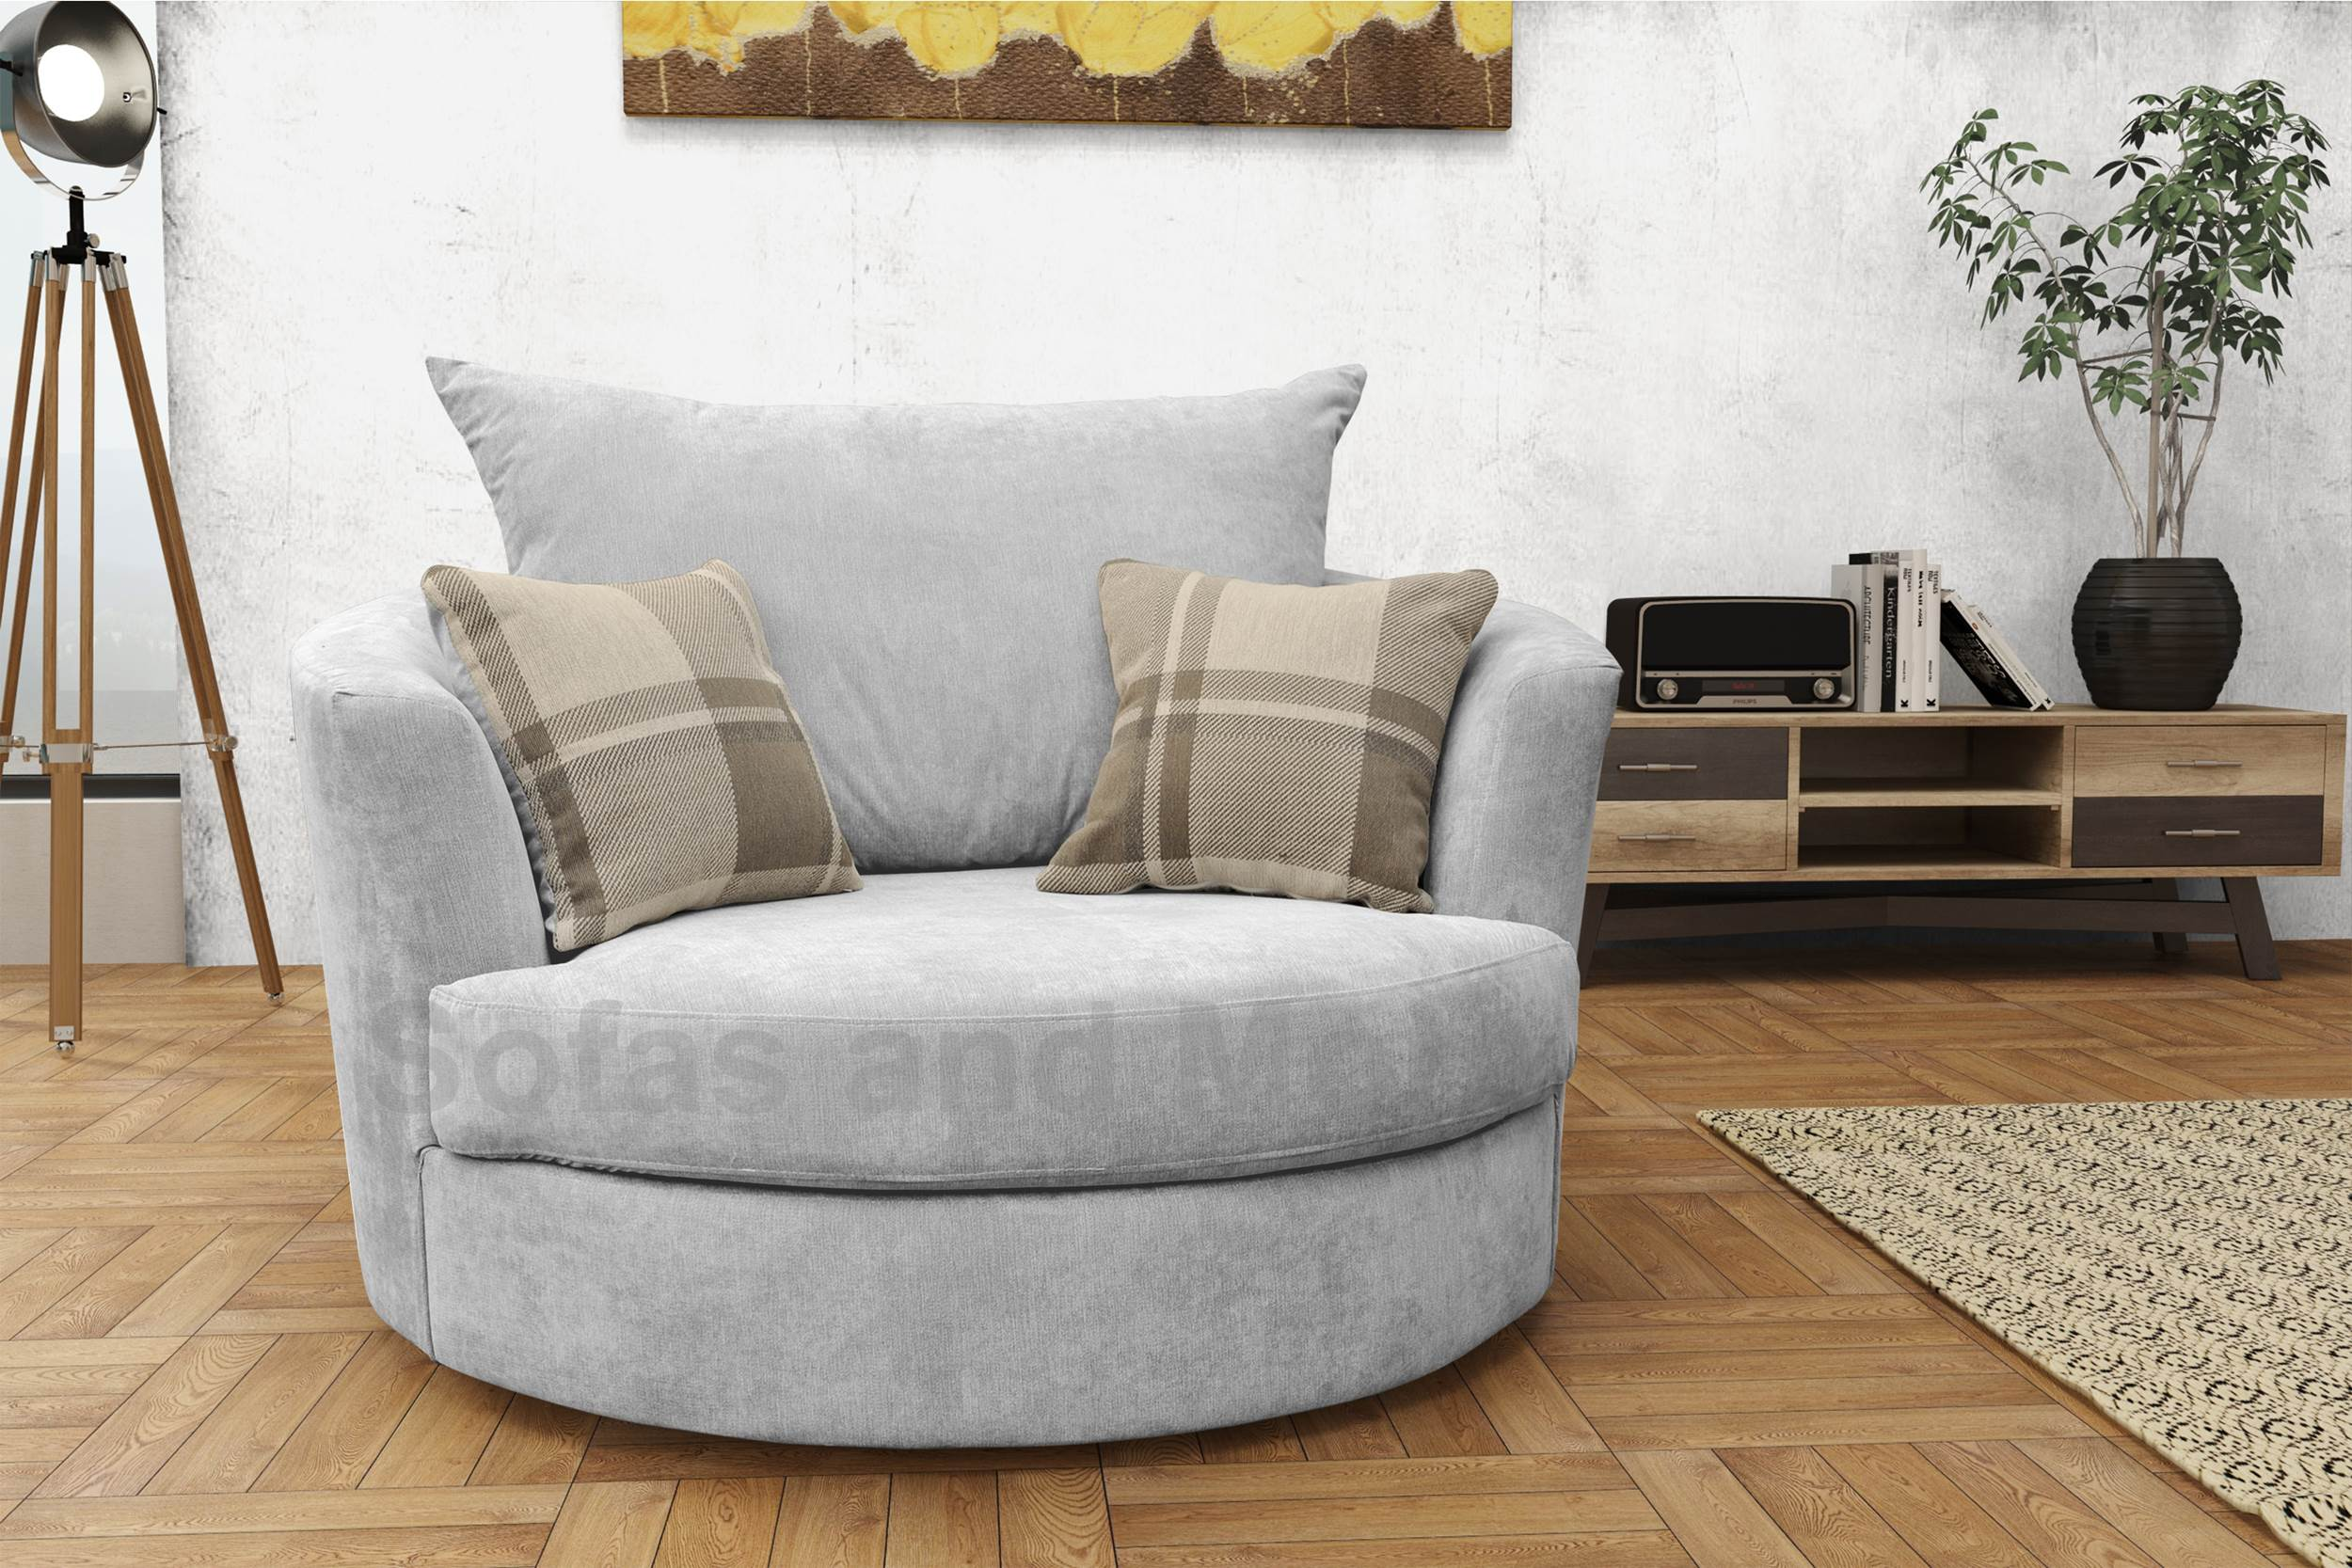 large swivel round cuddle chair fabric grey cream brown living room settee ebay. Black Bedroom Furniture Sets. Home Design Ideas